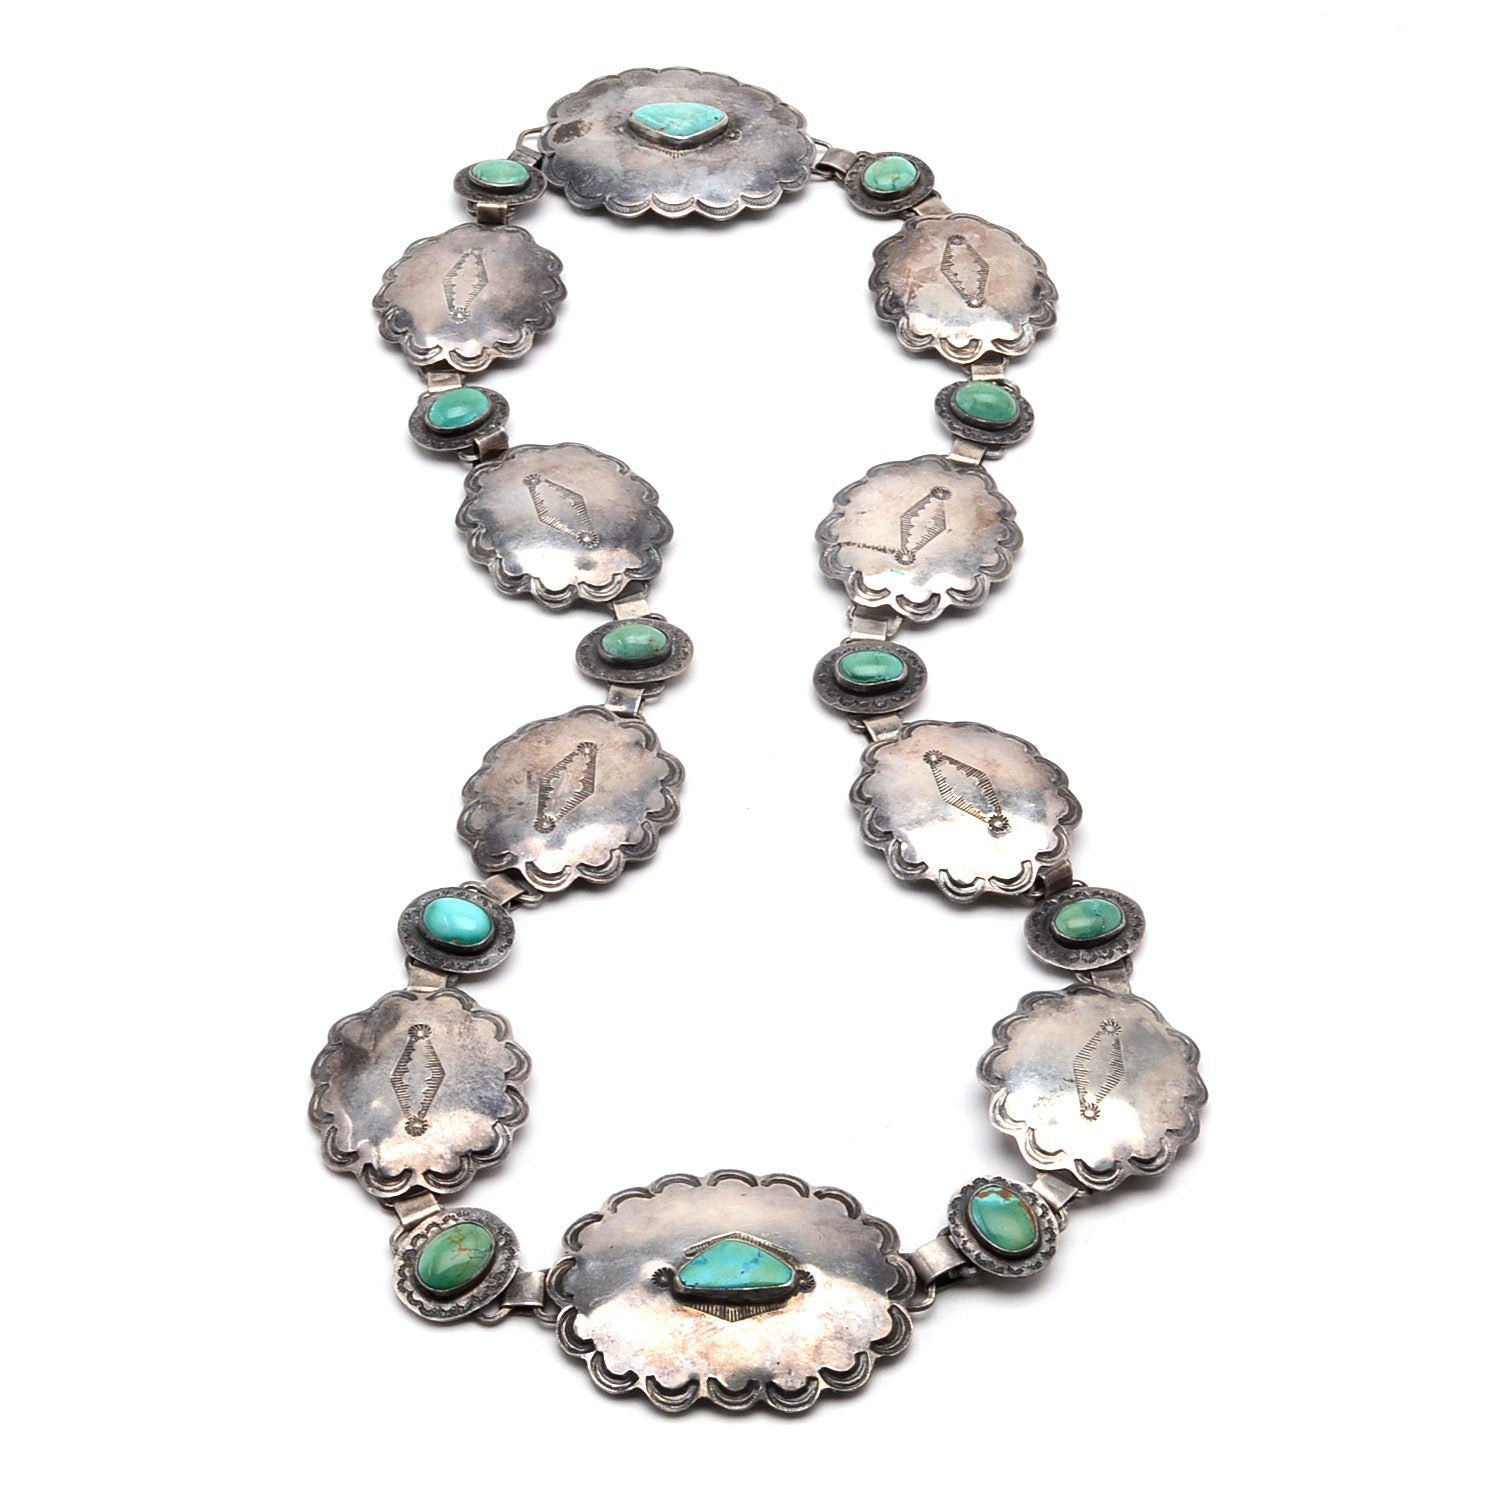 Vintage Native American Style Sterling Silver Concho Belt With Turquoise Stones